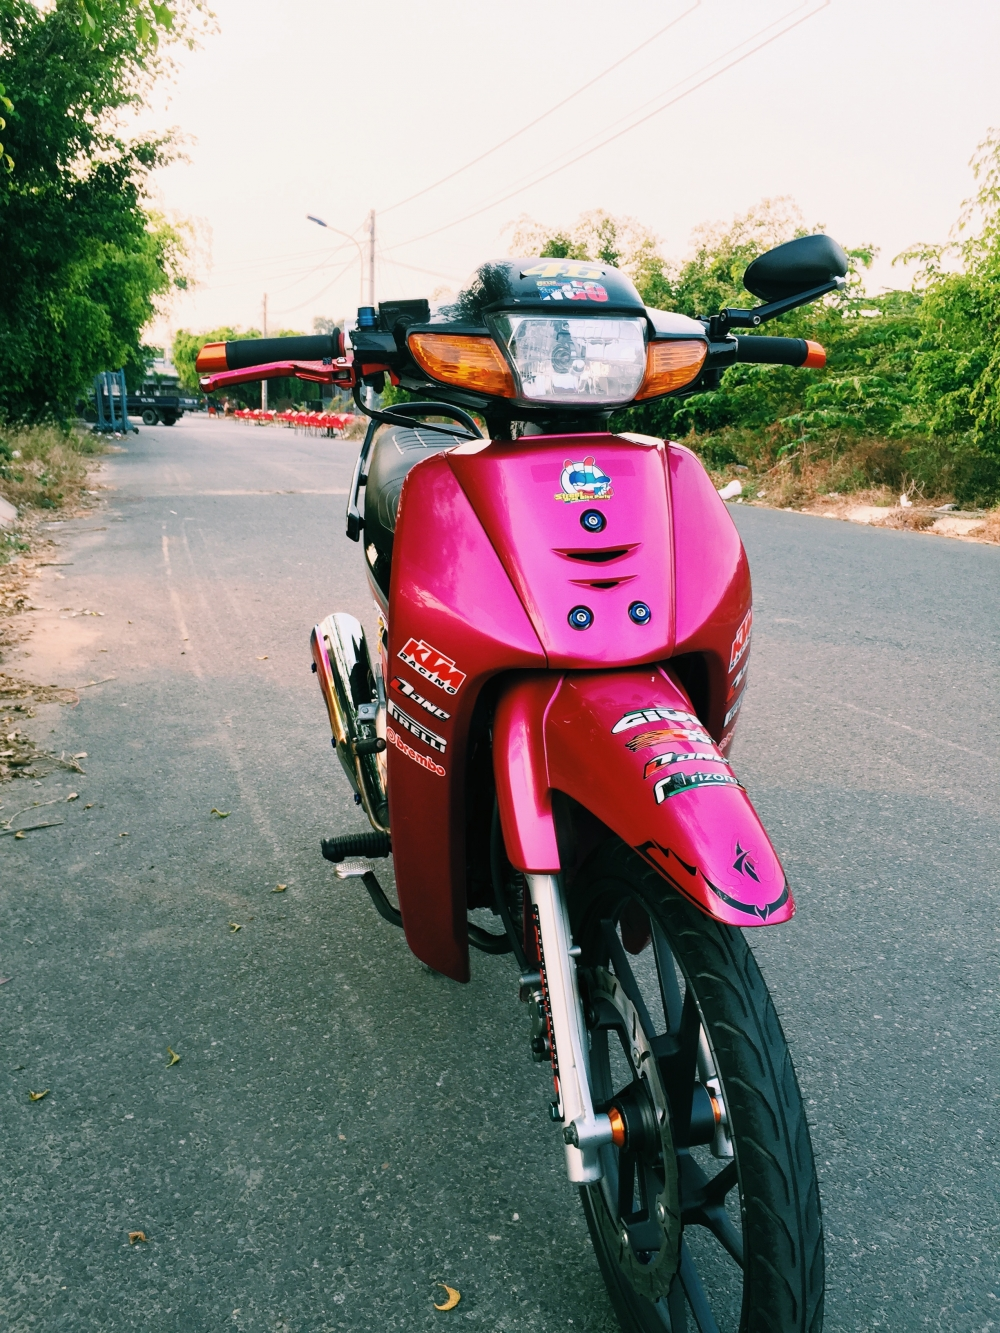 wave 50cc hoc sinh tap tanh don - 8